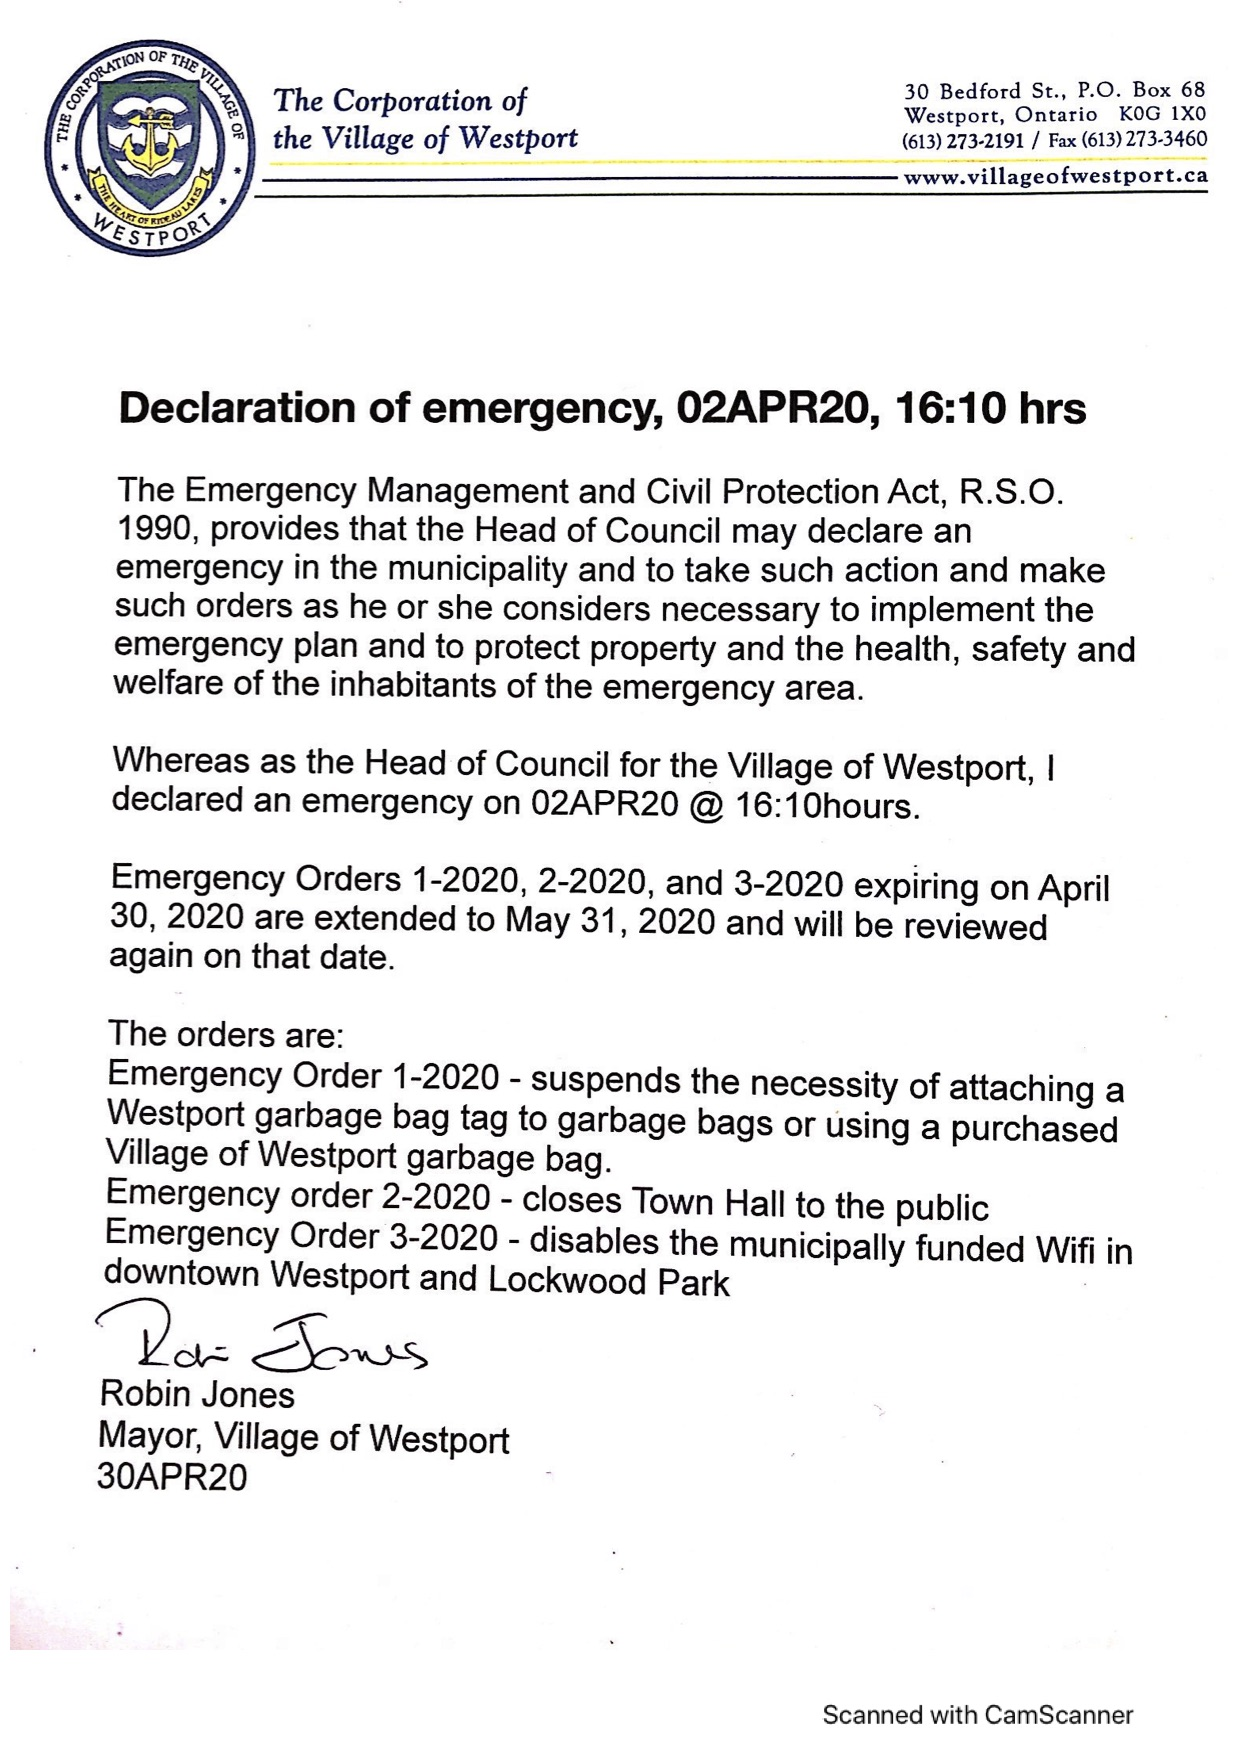 Extension of Emergency Orders 01MAY20